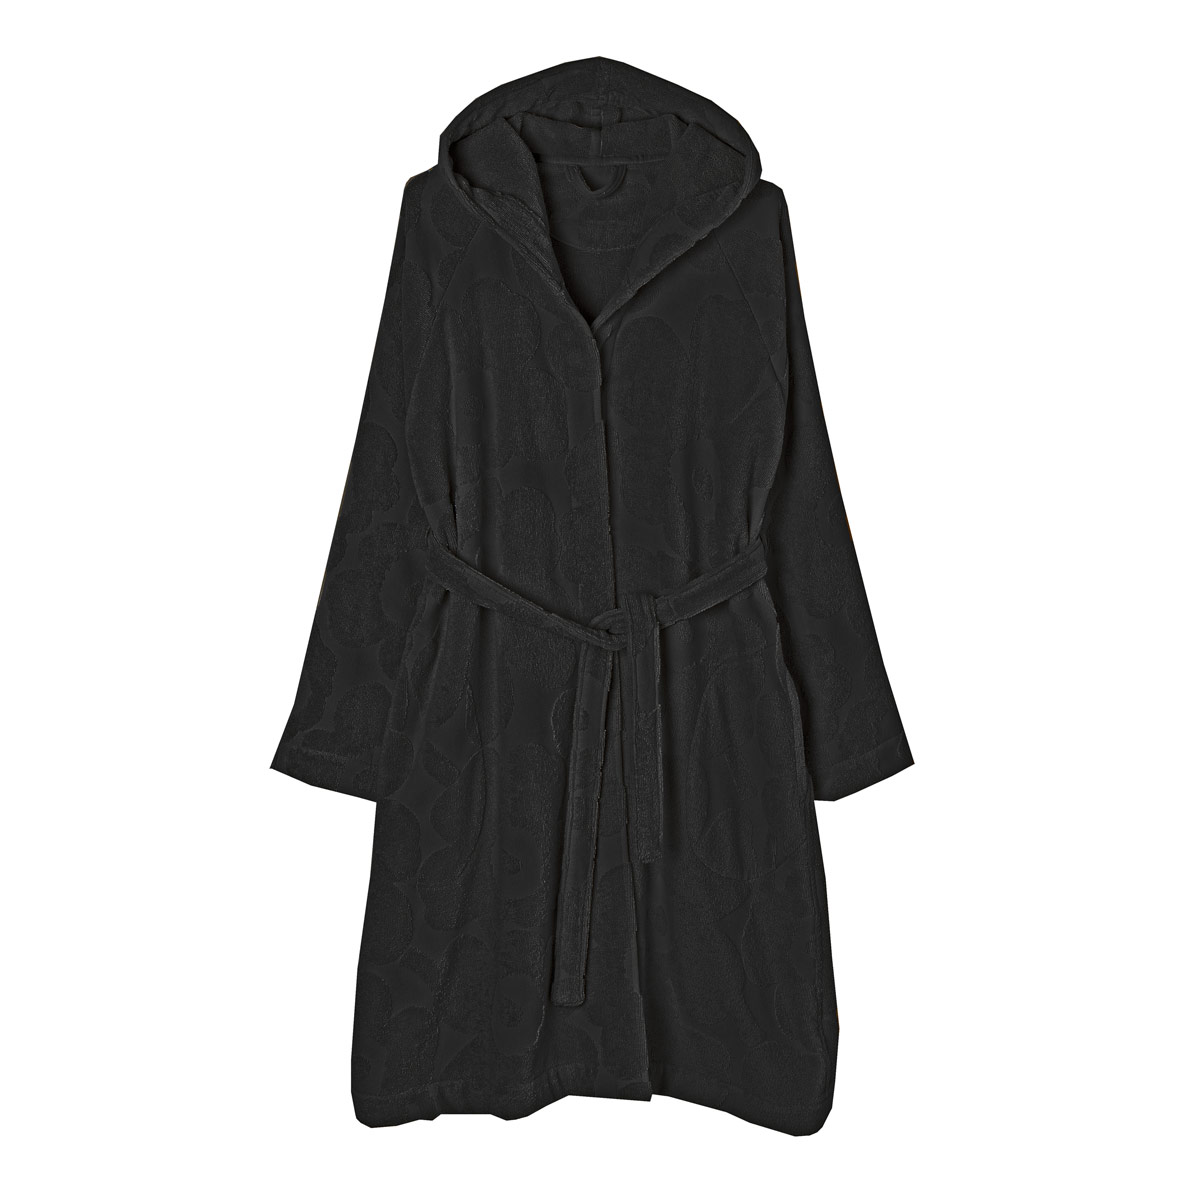 Find great deals on eBay for black bath robe mens. Shop with confidence.